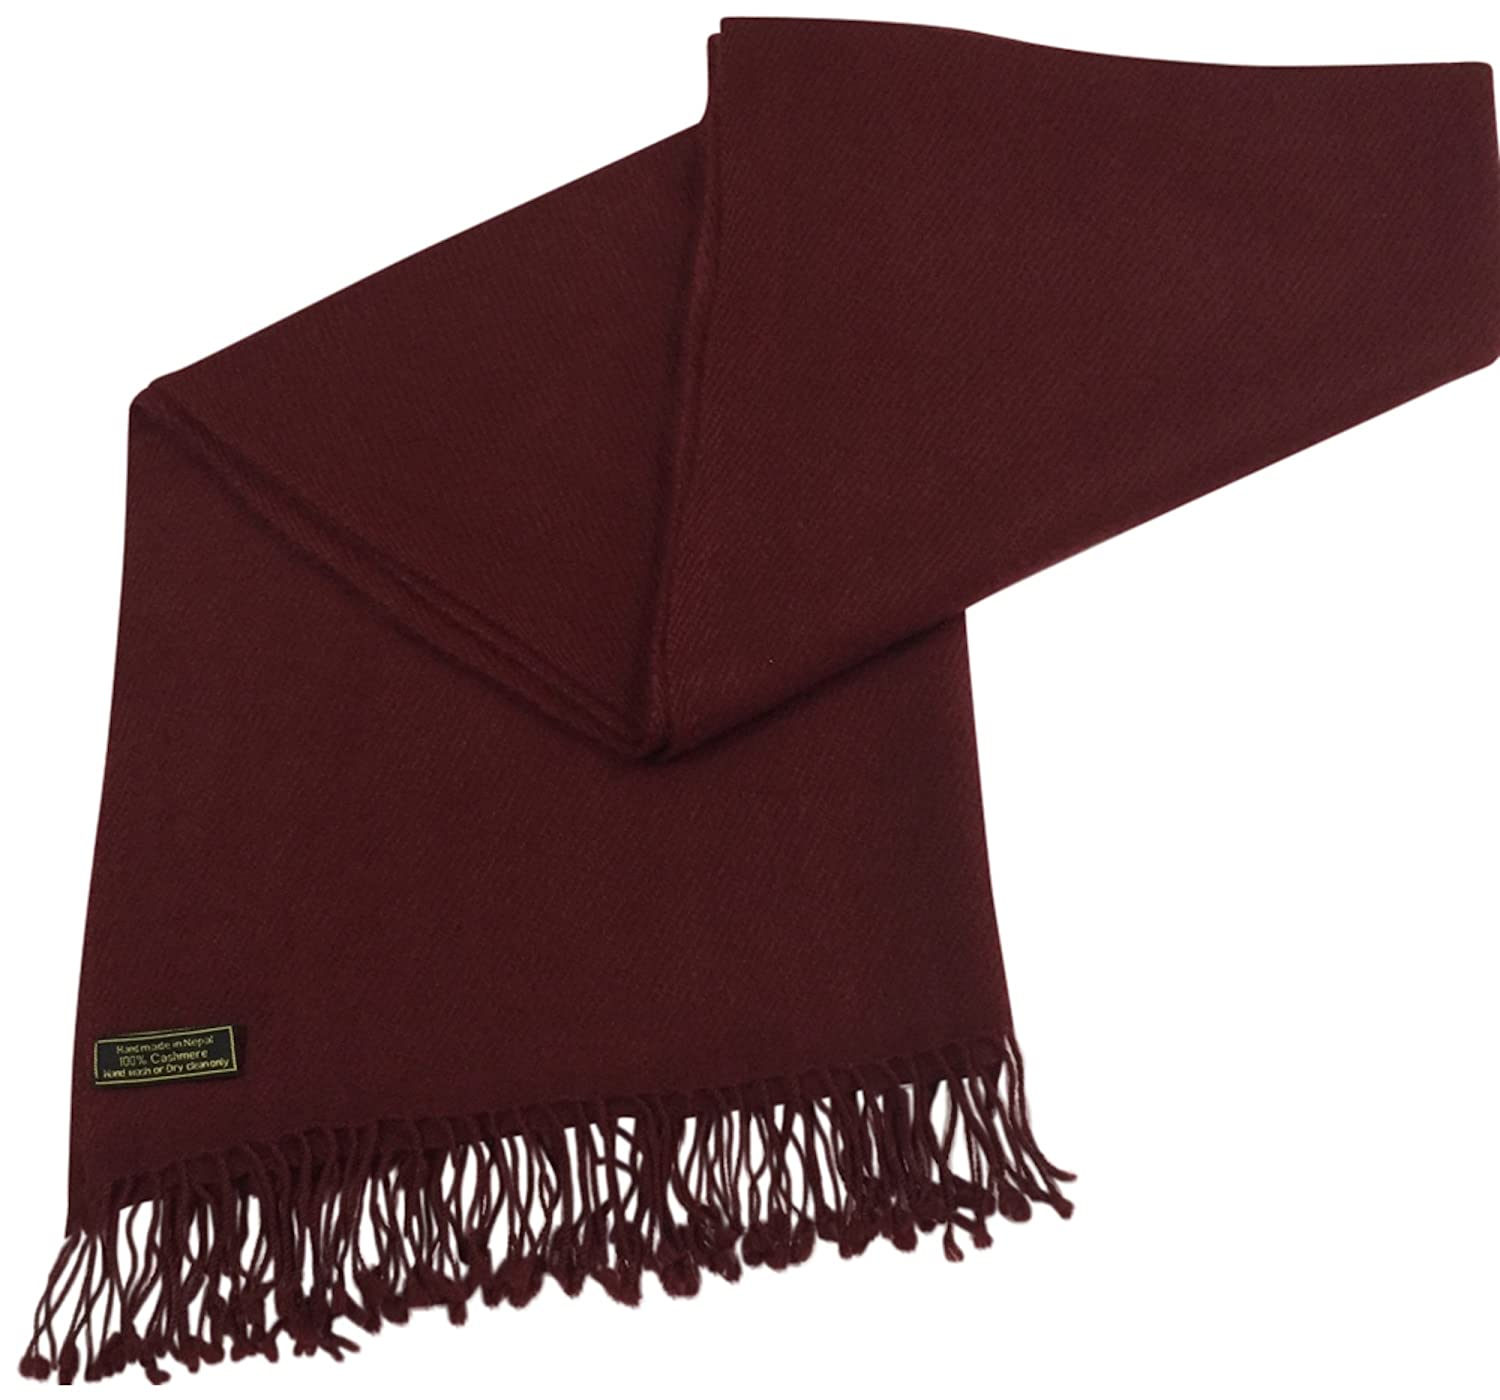 Burgundy Beige High Grade 100% Cashmere Shawl Scarf Wrap Hand Made in Nepal NEW